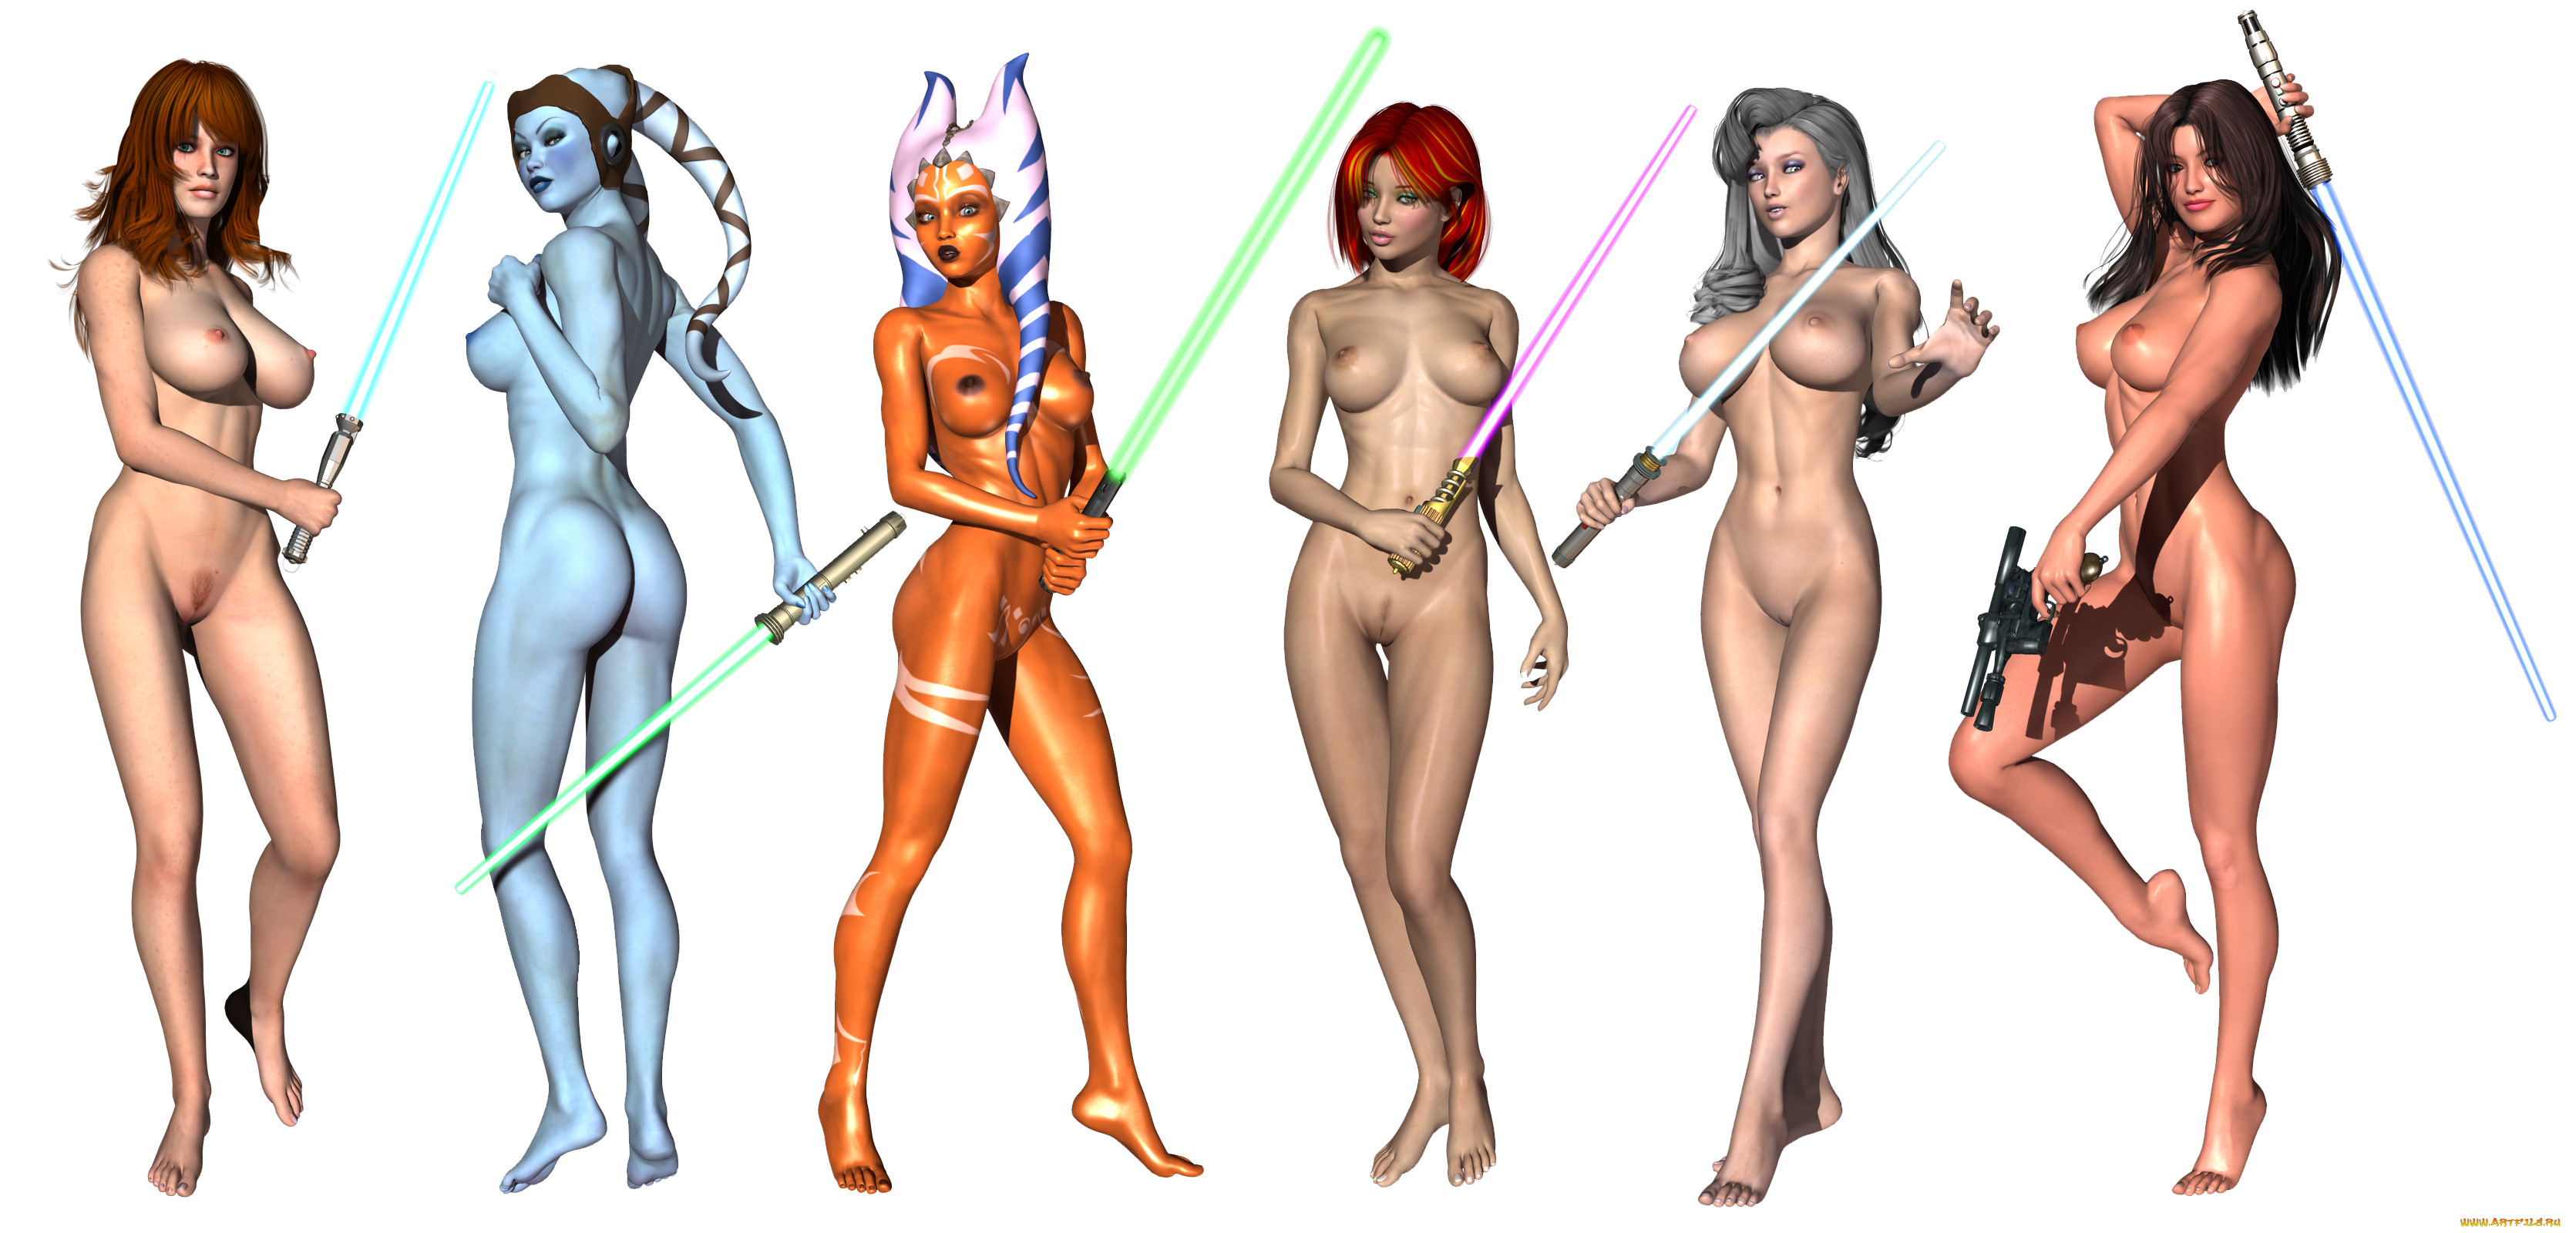 Female jedi sex sexy images